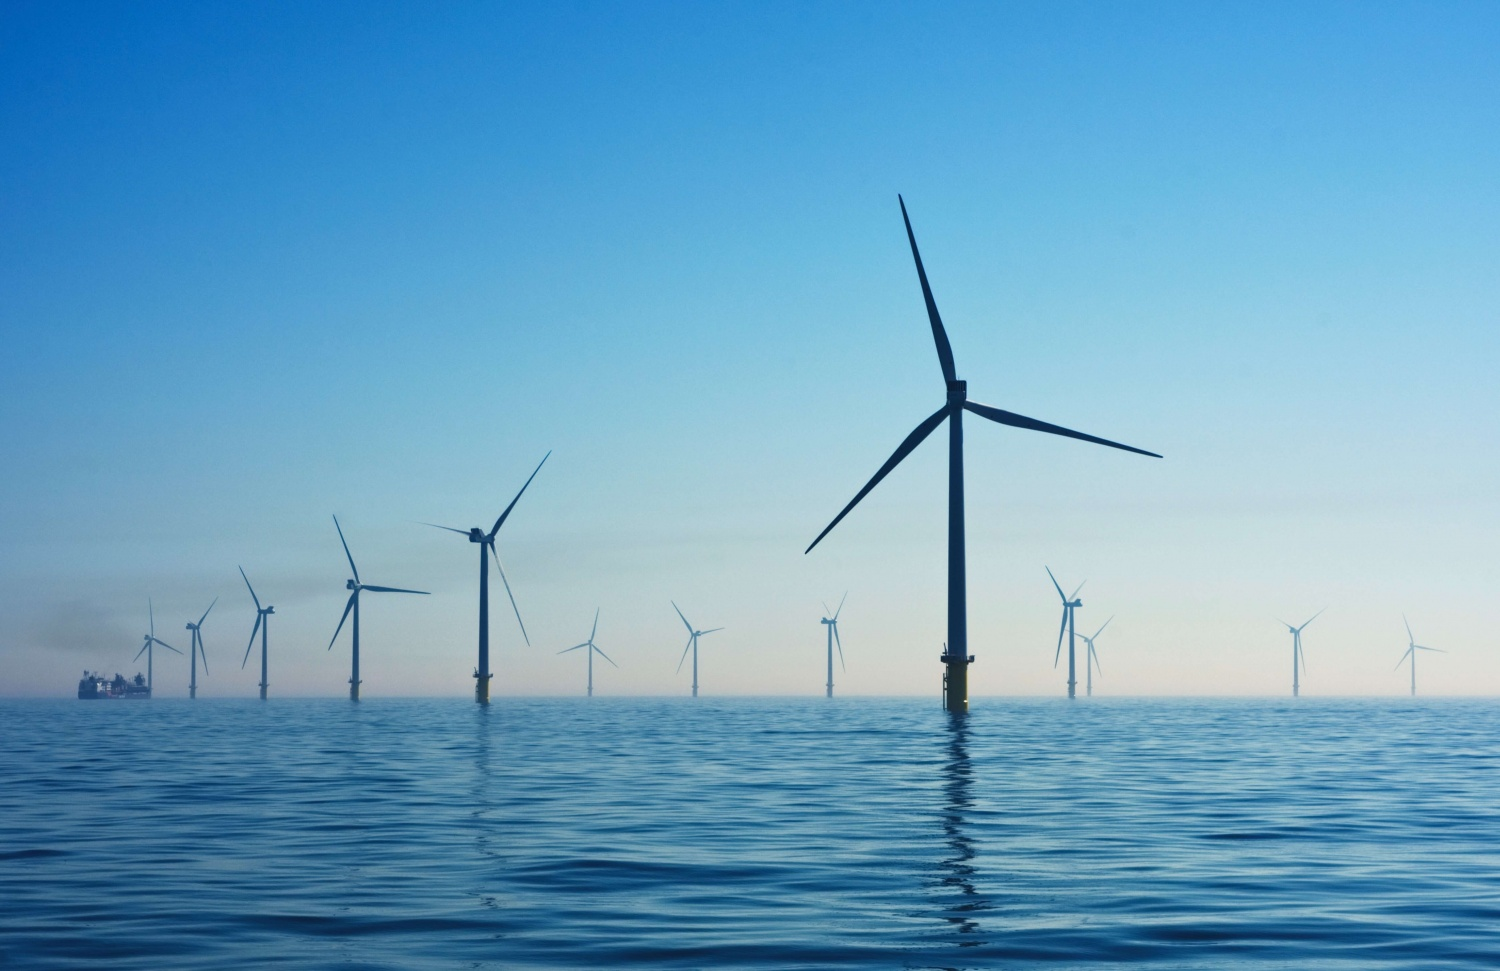 South Korea Gets 1.4 Gigawatt Floating Offshore Wind Farm Capable of Powering 1 Million Homes | Learn More